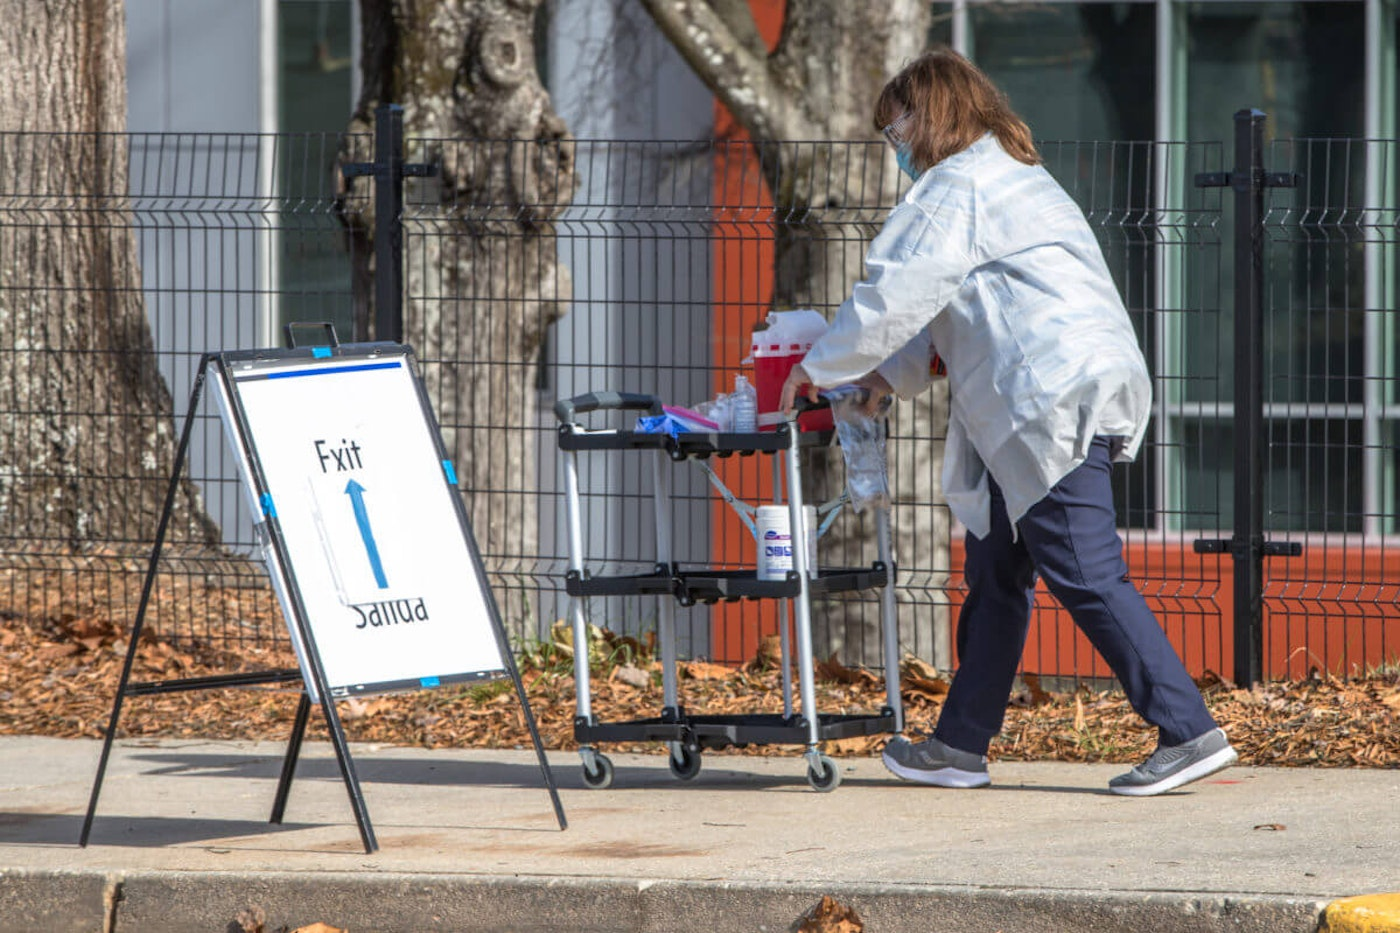 In this January 2021 file photo, a medical professional heads to the parking lot at Bojangles Arena in Charlotte to administer the Covid-19 vaccine to a patient in their vehicle. (Photo by Grant Baldwin for Courier Newsroom.)